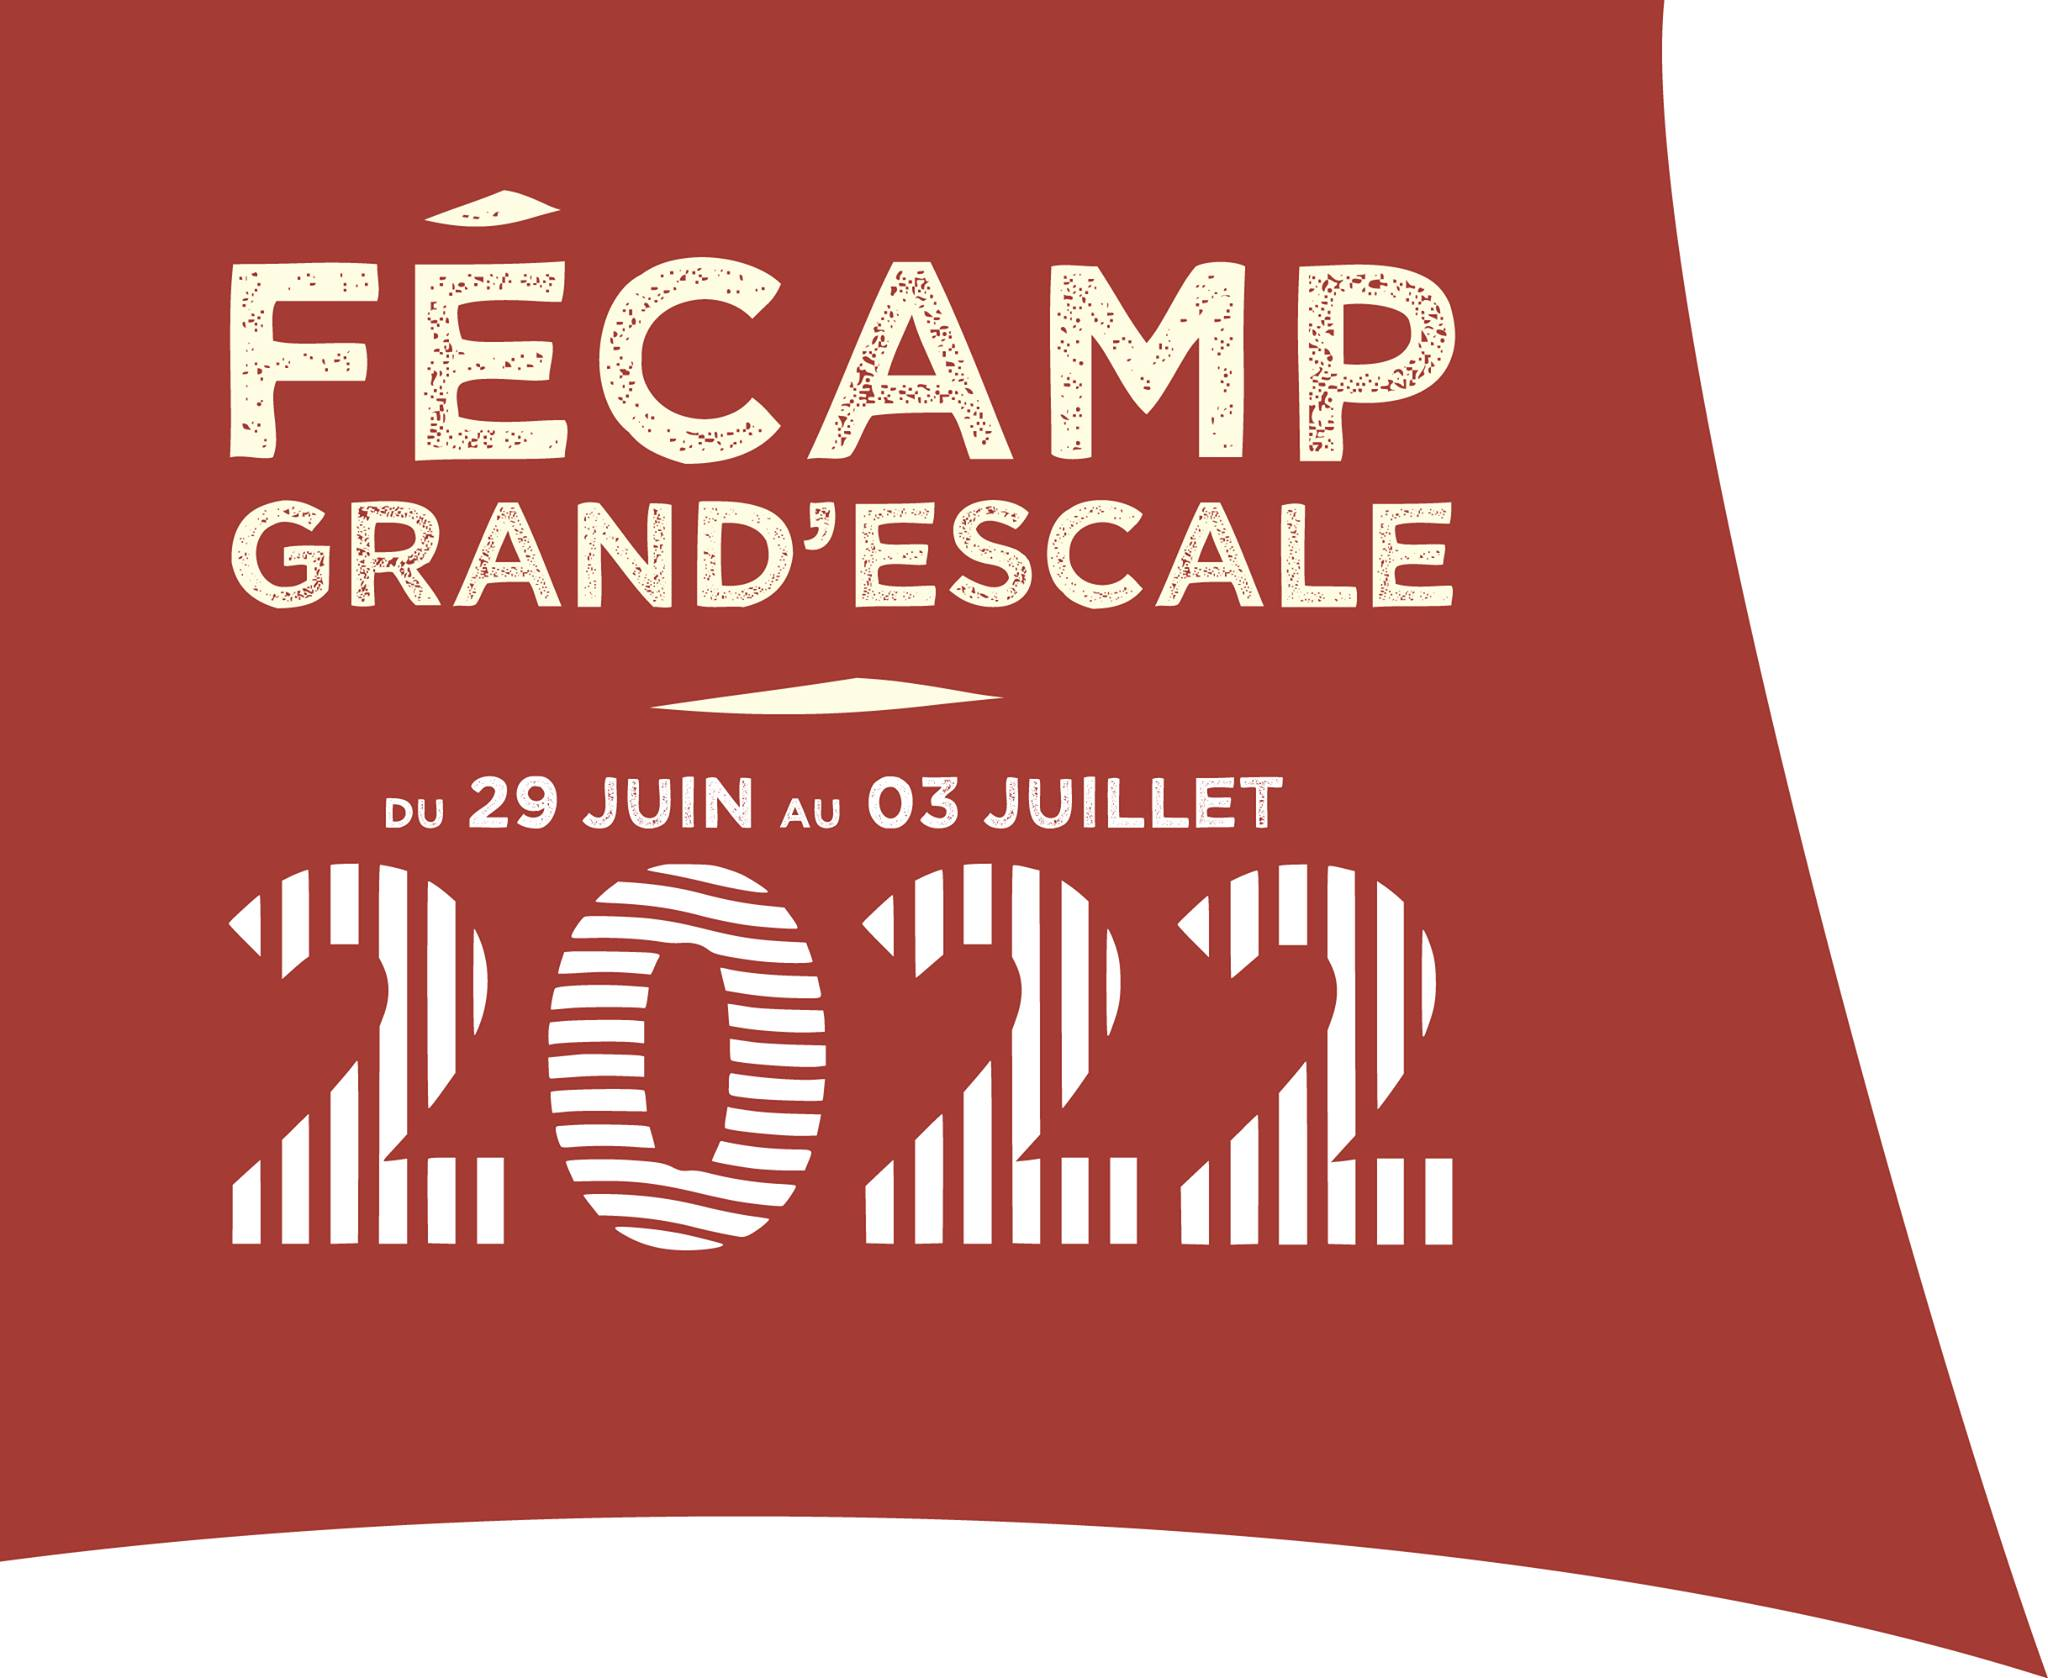 Fécamp Grand'Escale 2022